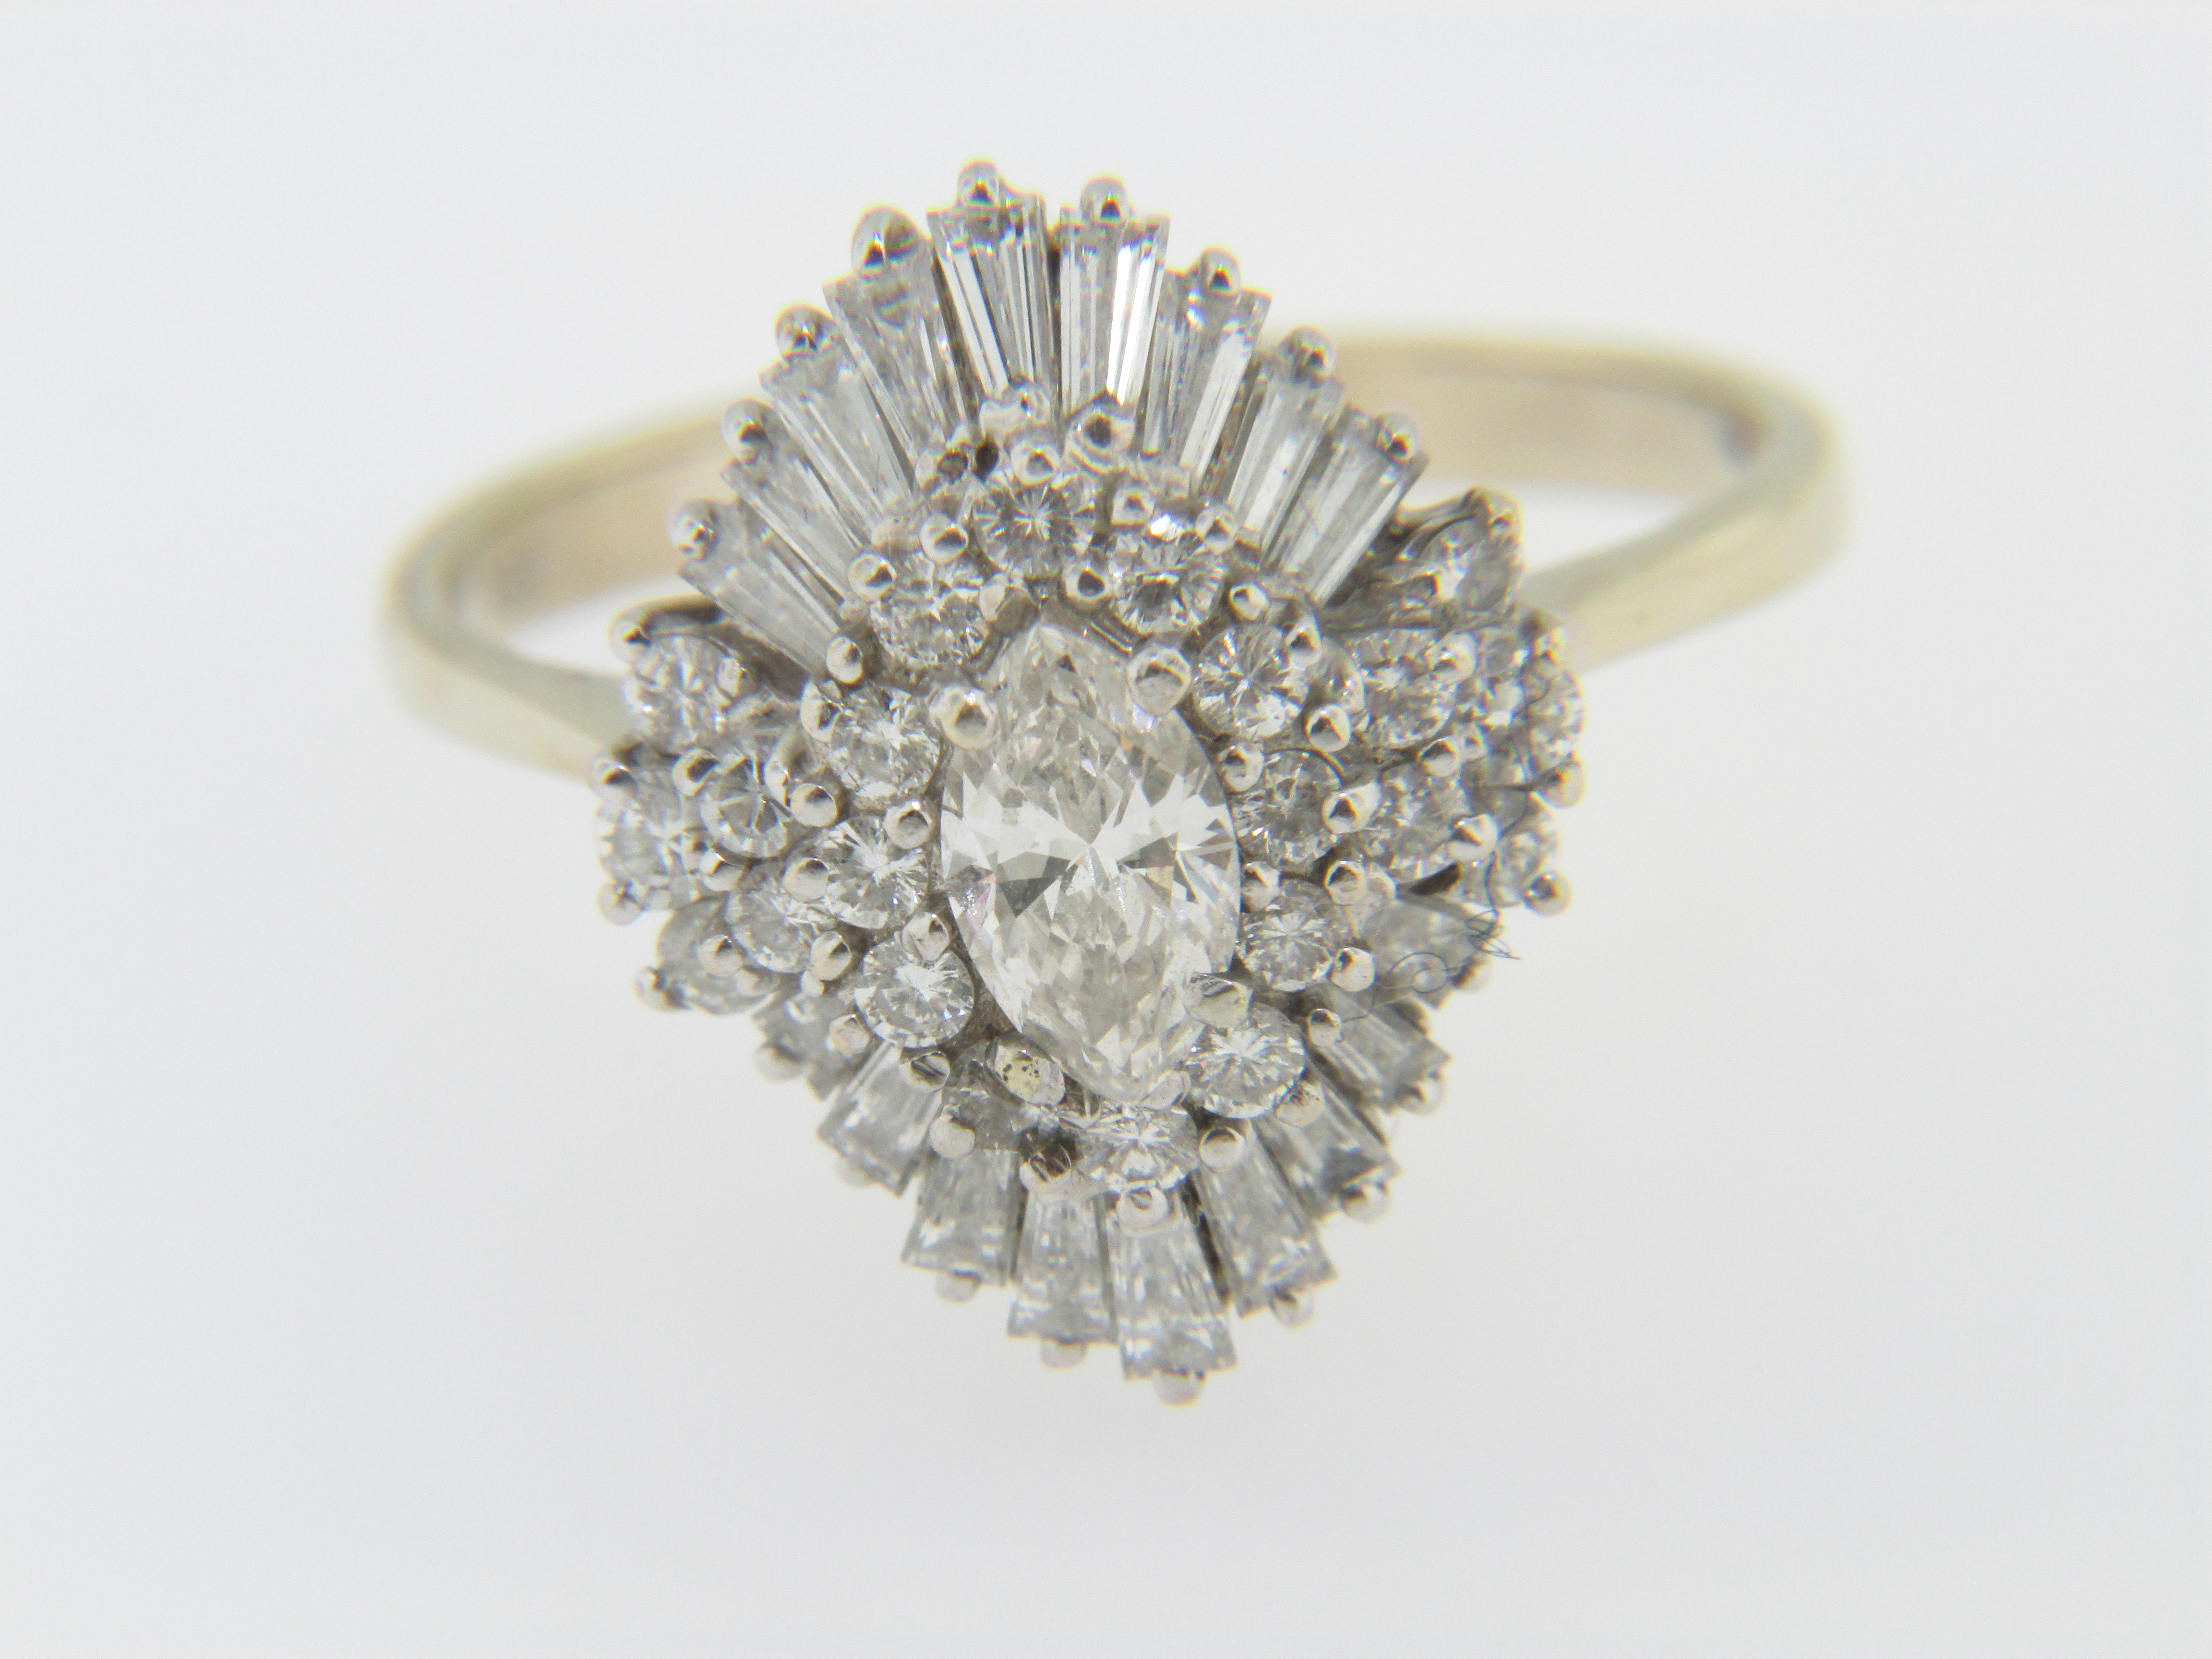 This Is A Vintage 15ctw Marquise, Round And Baguette Diamond Cluster  Ballerina Ring In 18k White And Yellow Gold Size 925 The Ring Weighs 54  Grams And